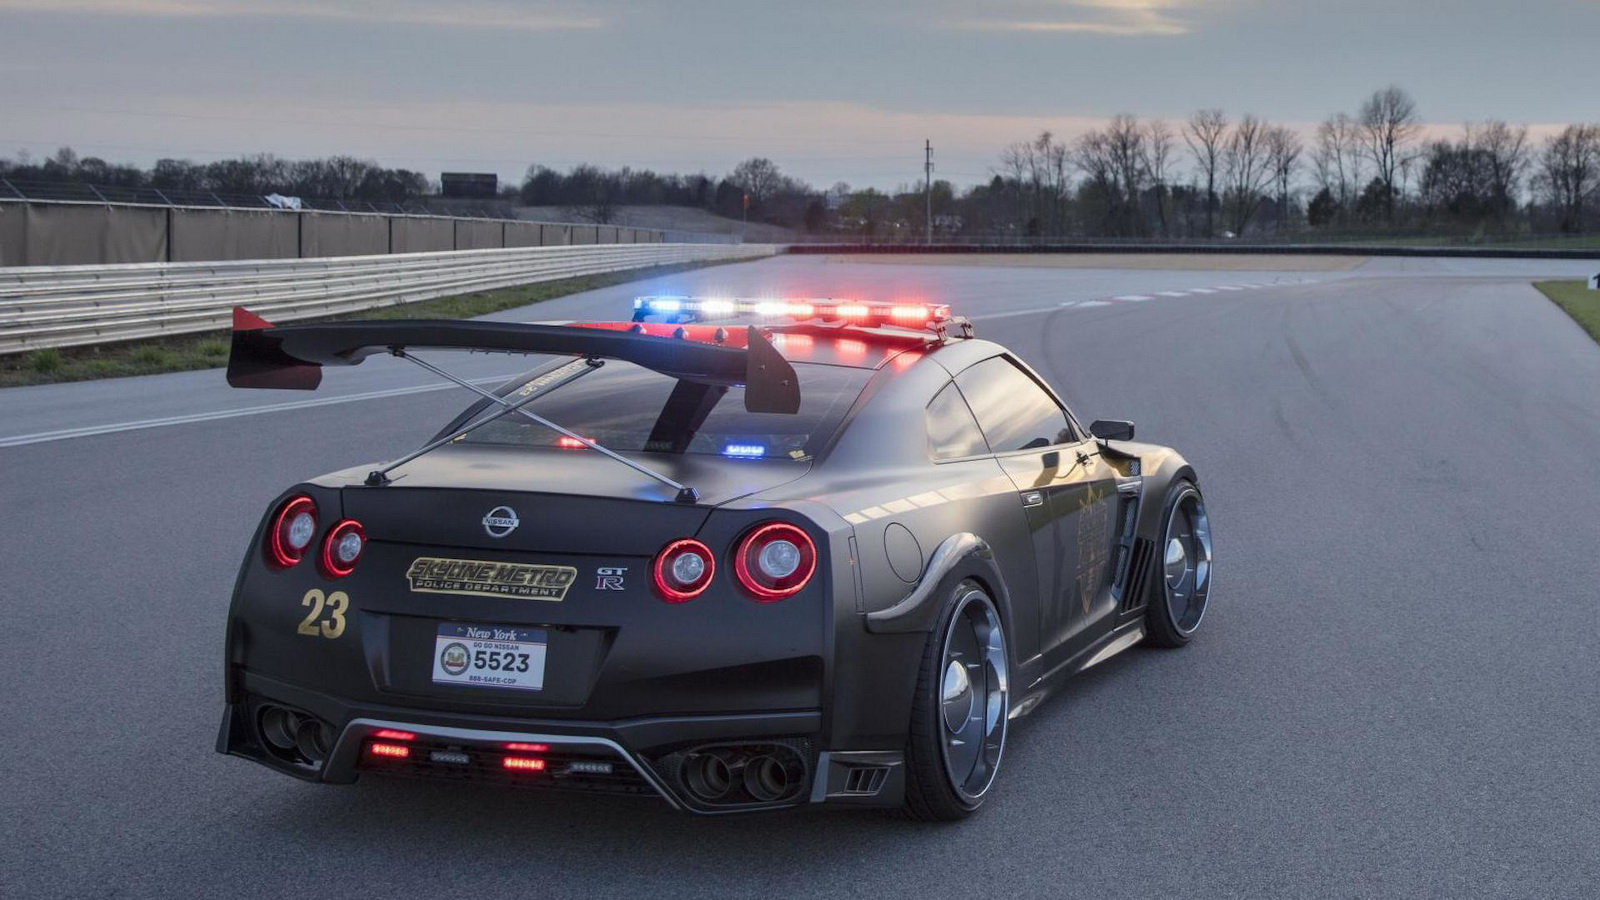 Catch me if you can - Nissan GT-R 'Copzilla' police ...